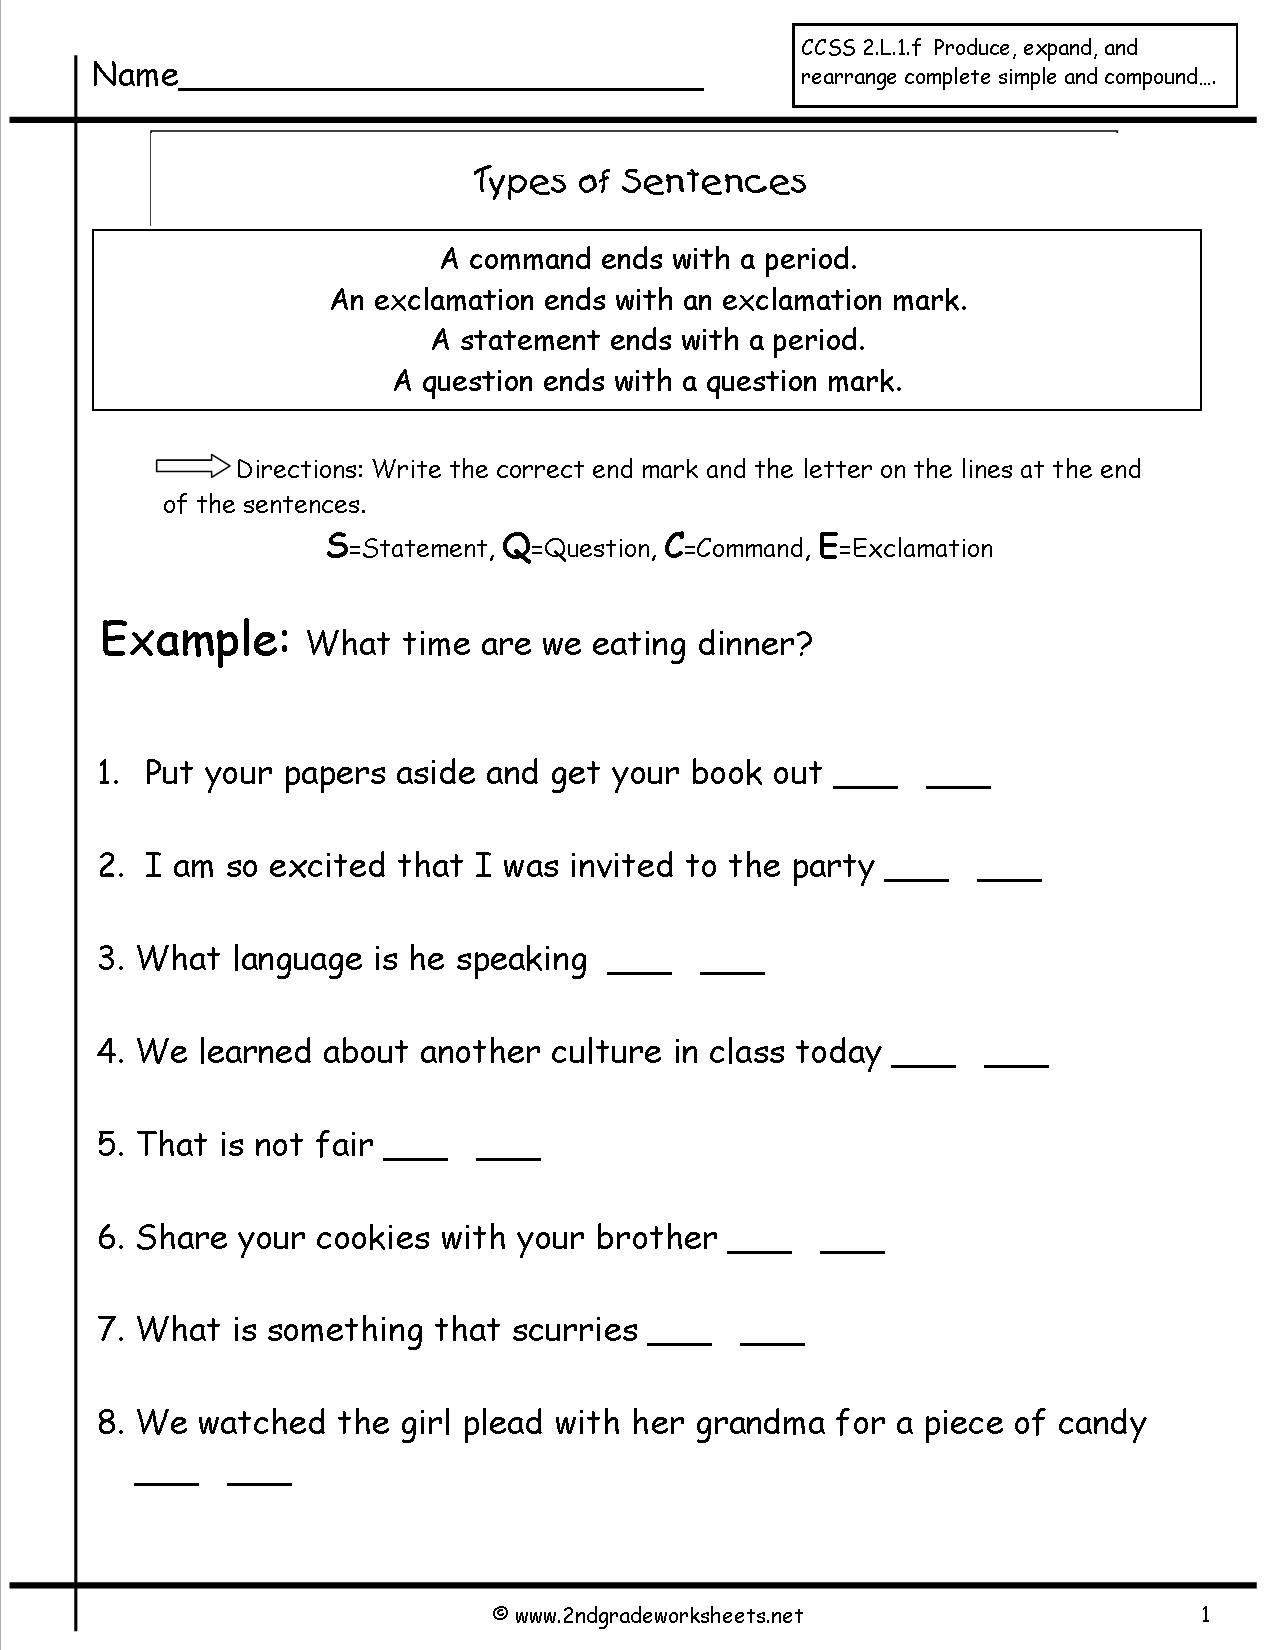 Topic Sentence Worksheets 5th Grade Second Grade Sentences Worksheets Ccss 4th Sentence